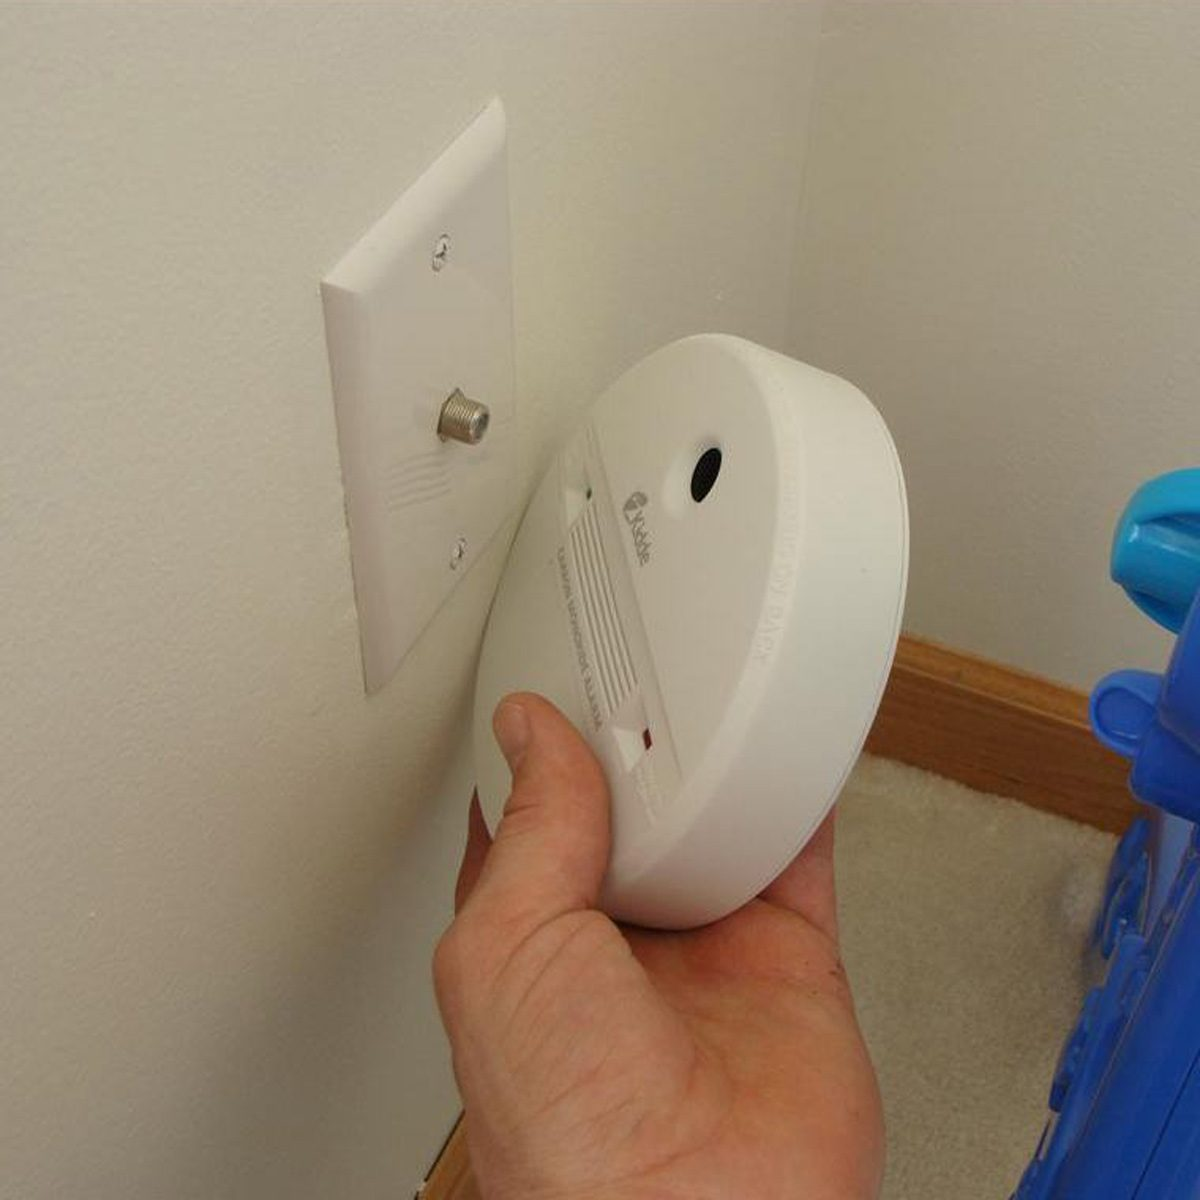 CO-Alarm great goof home inspector nightmares carbon monoxide monitor on cable outlet